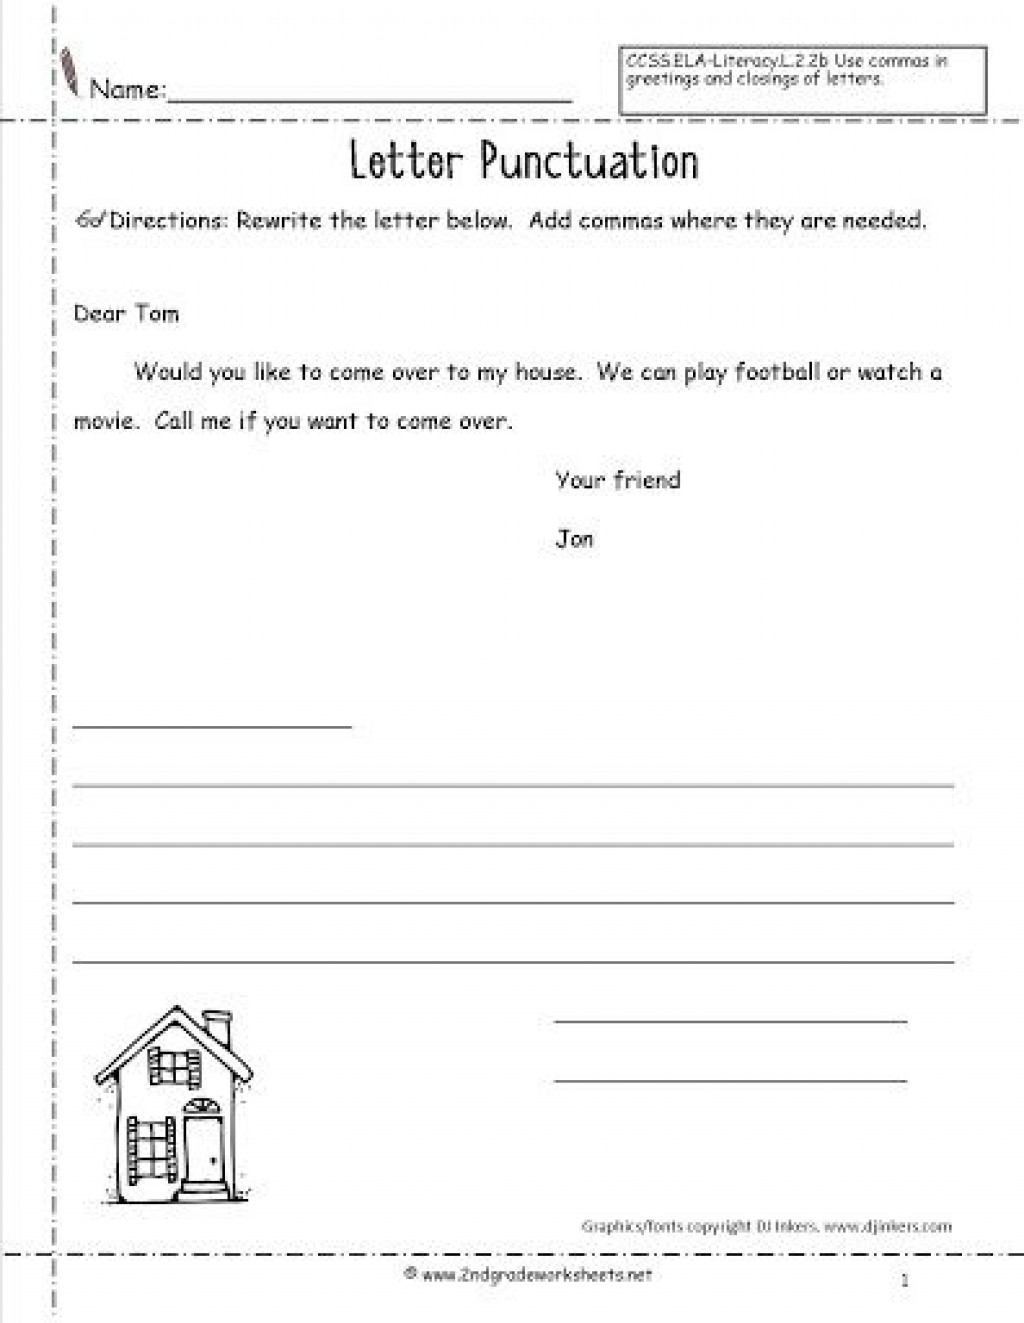 004 Remarkable Free Letter Writing Template 2nd Grade Sample Large